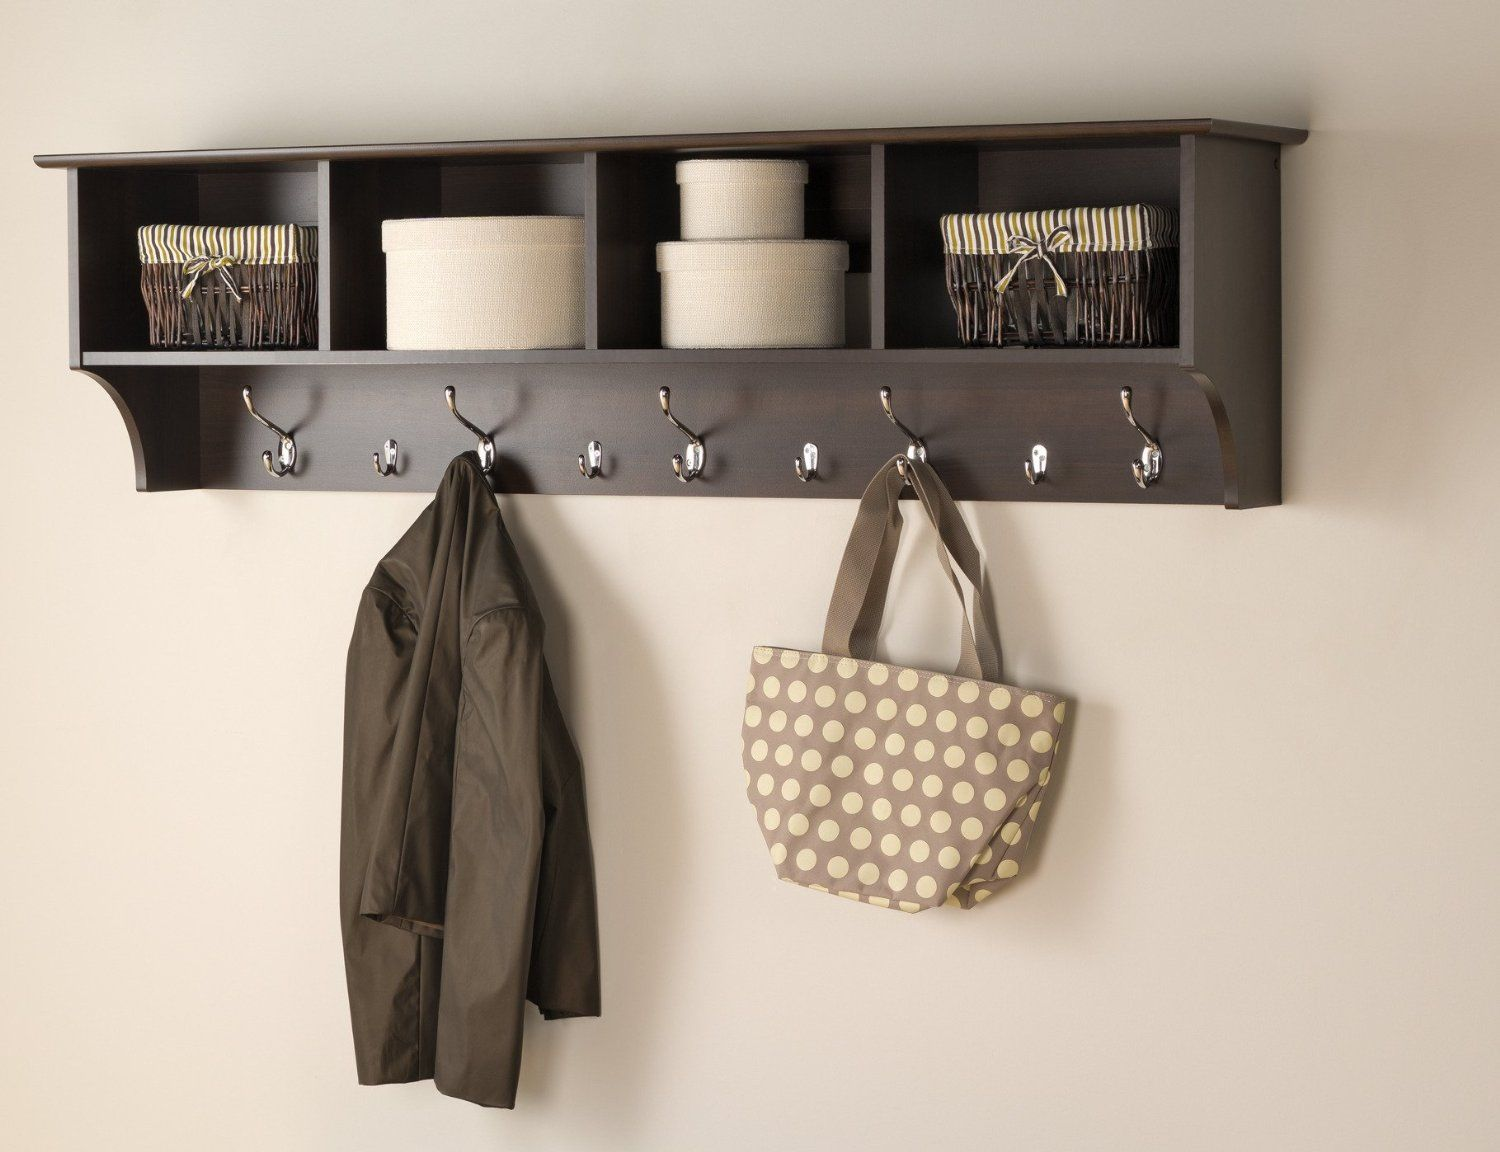 Merveilleux Hang Your Coats, Jackets, Bags And Other Entryway Belongings In A Single,  Convenient Area With This Everett Espresso Wide Hanging Entryway Shelf.